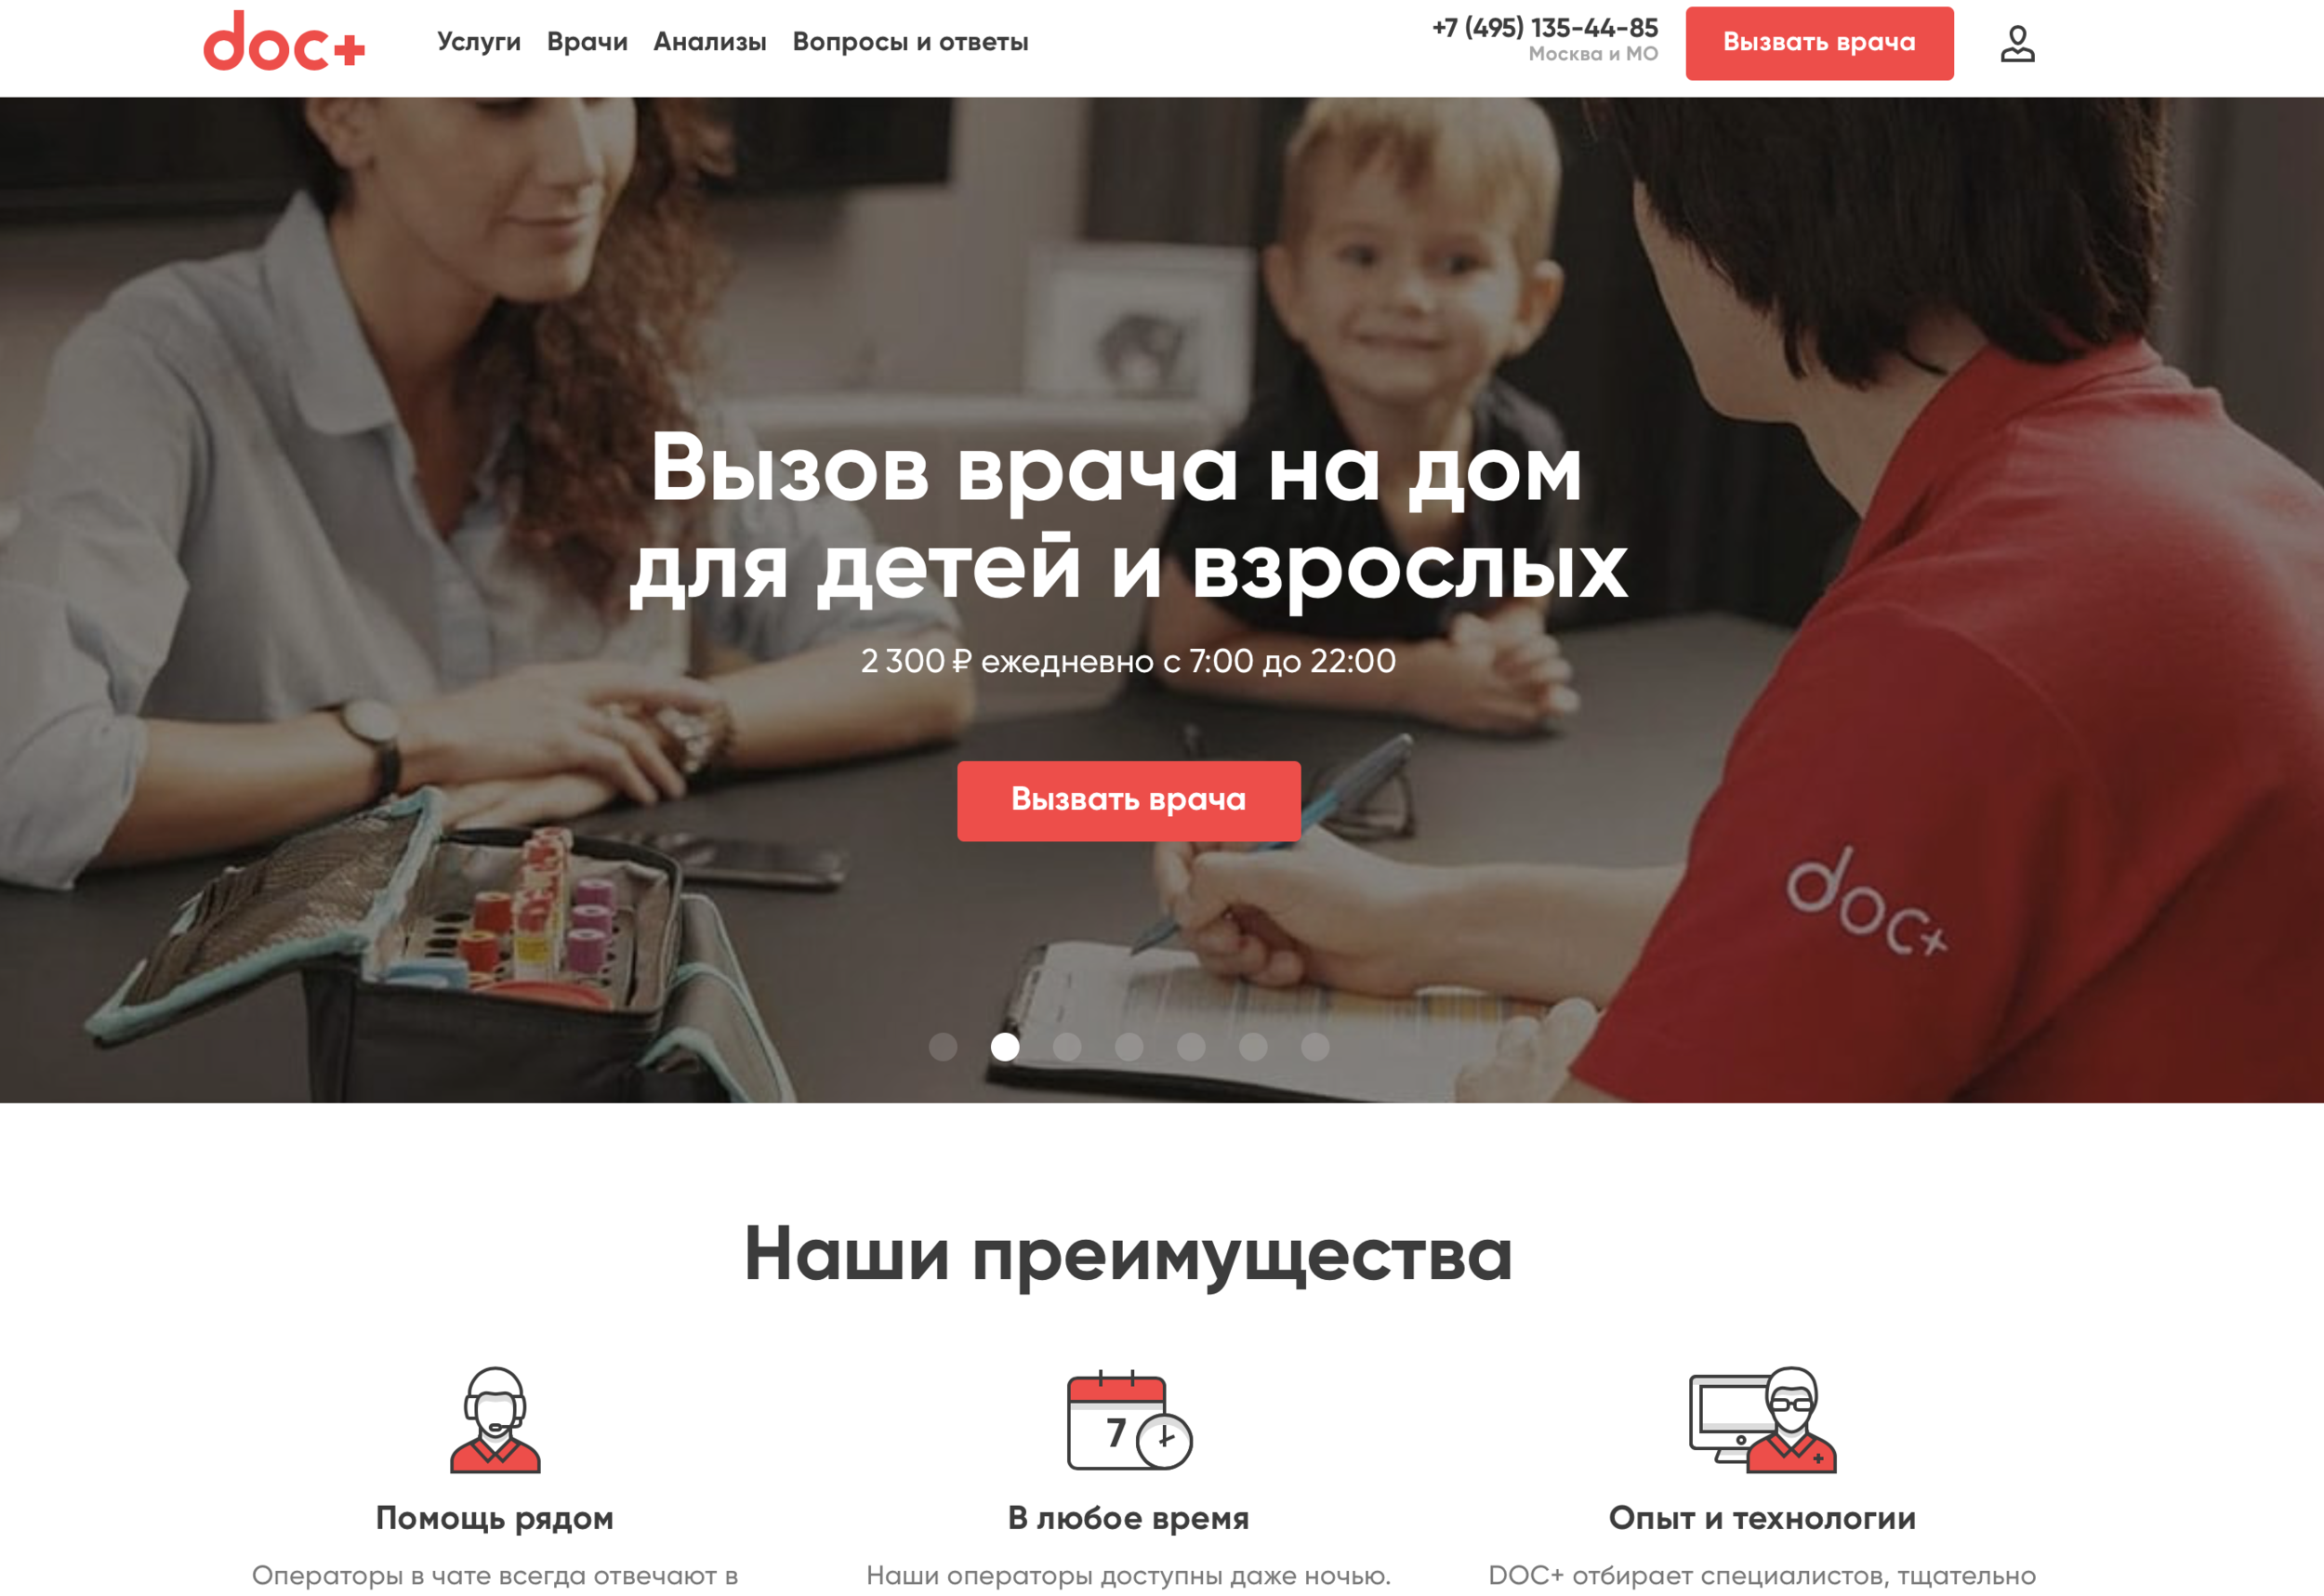 docplus.ru DOC+ is a digital health company specializing in on-demand medical services (house calls and telemedicine), EHR and medical data management.